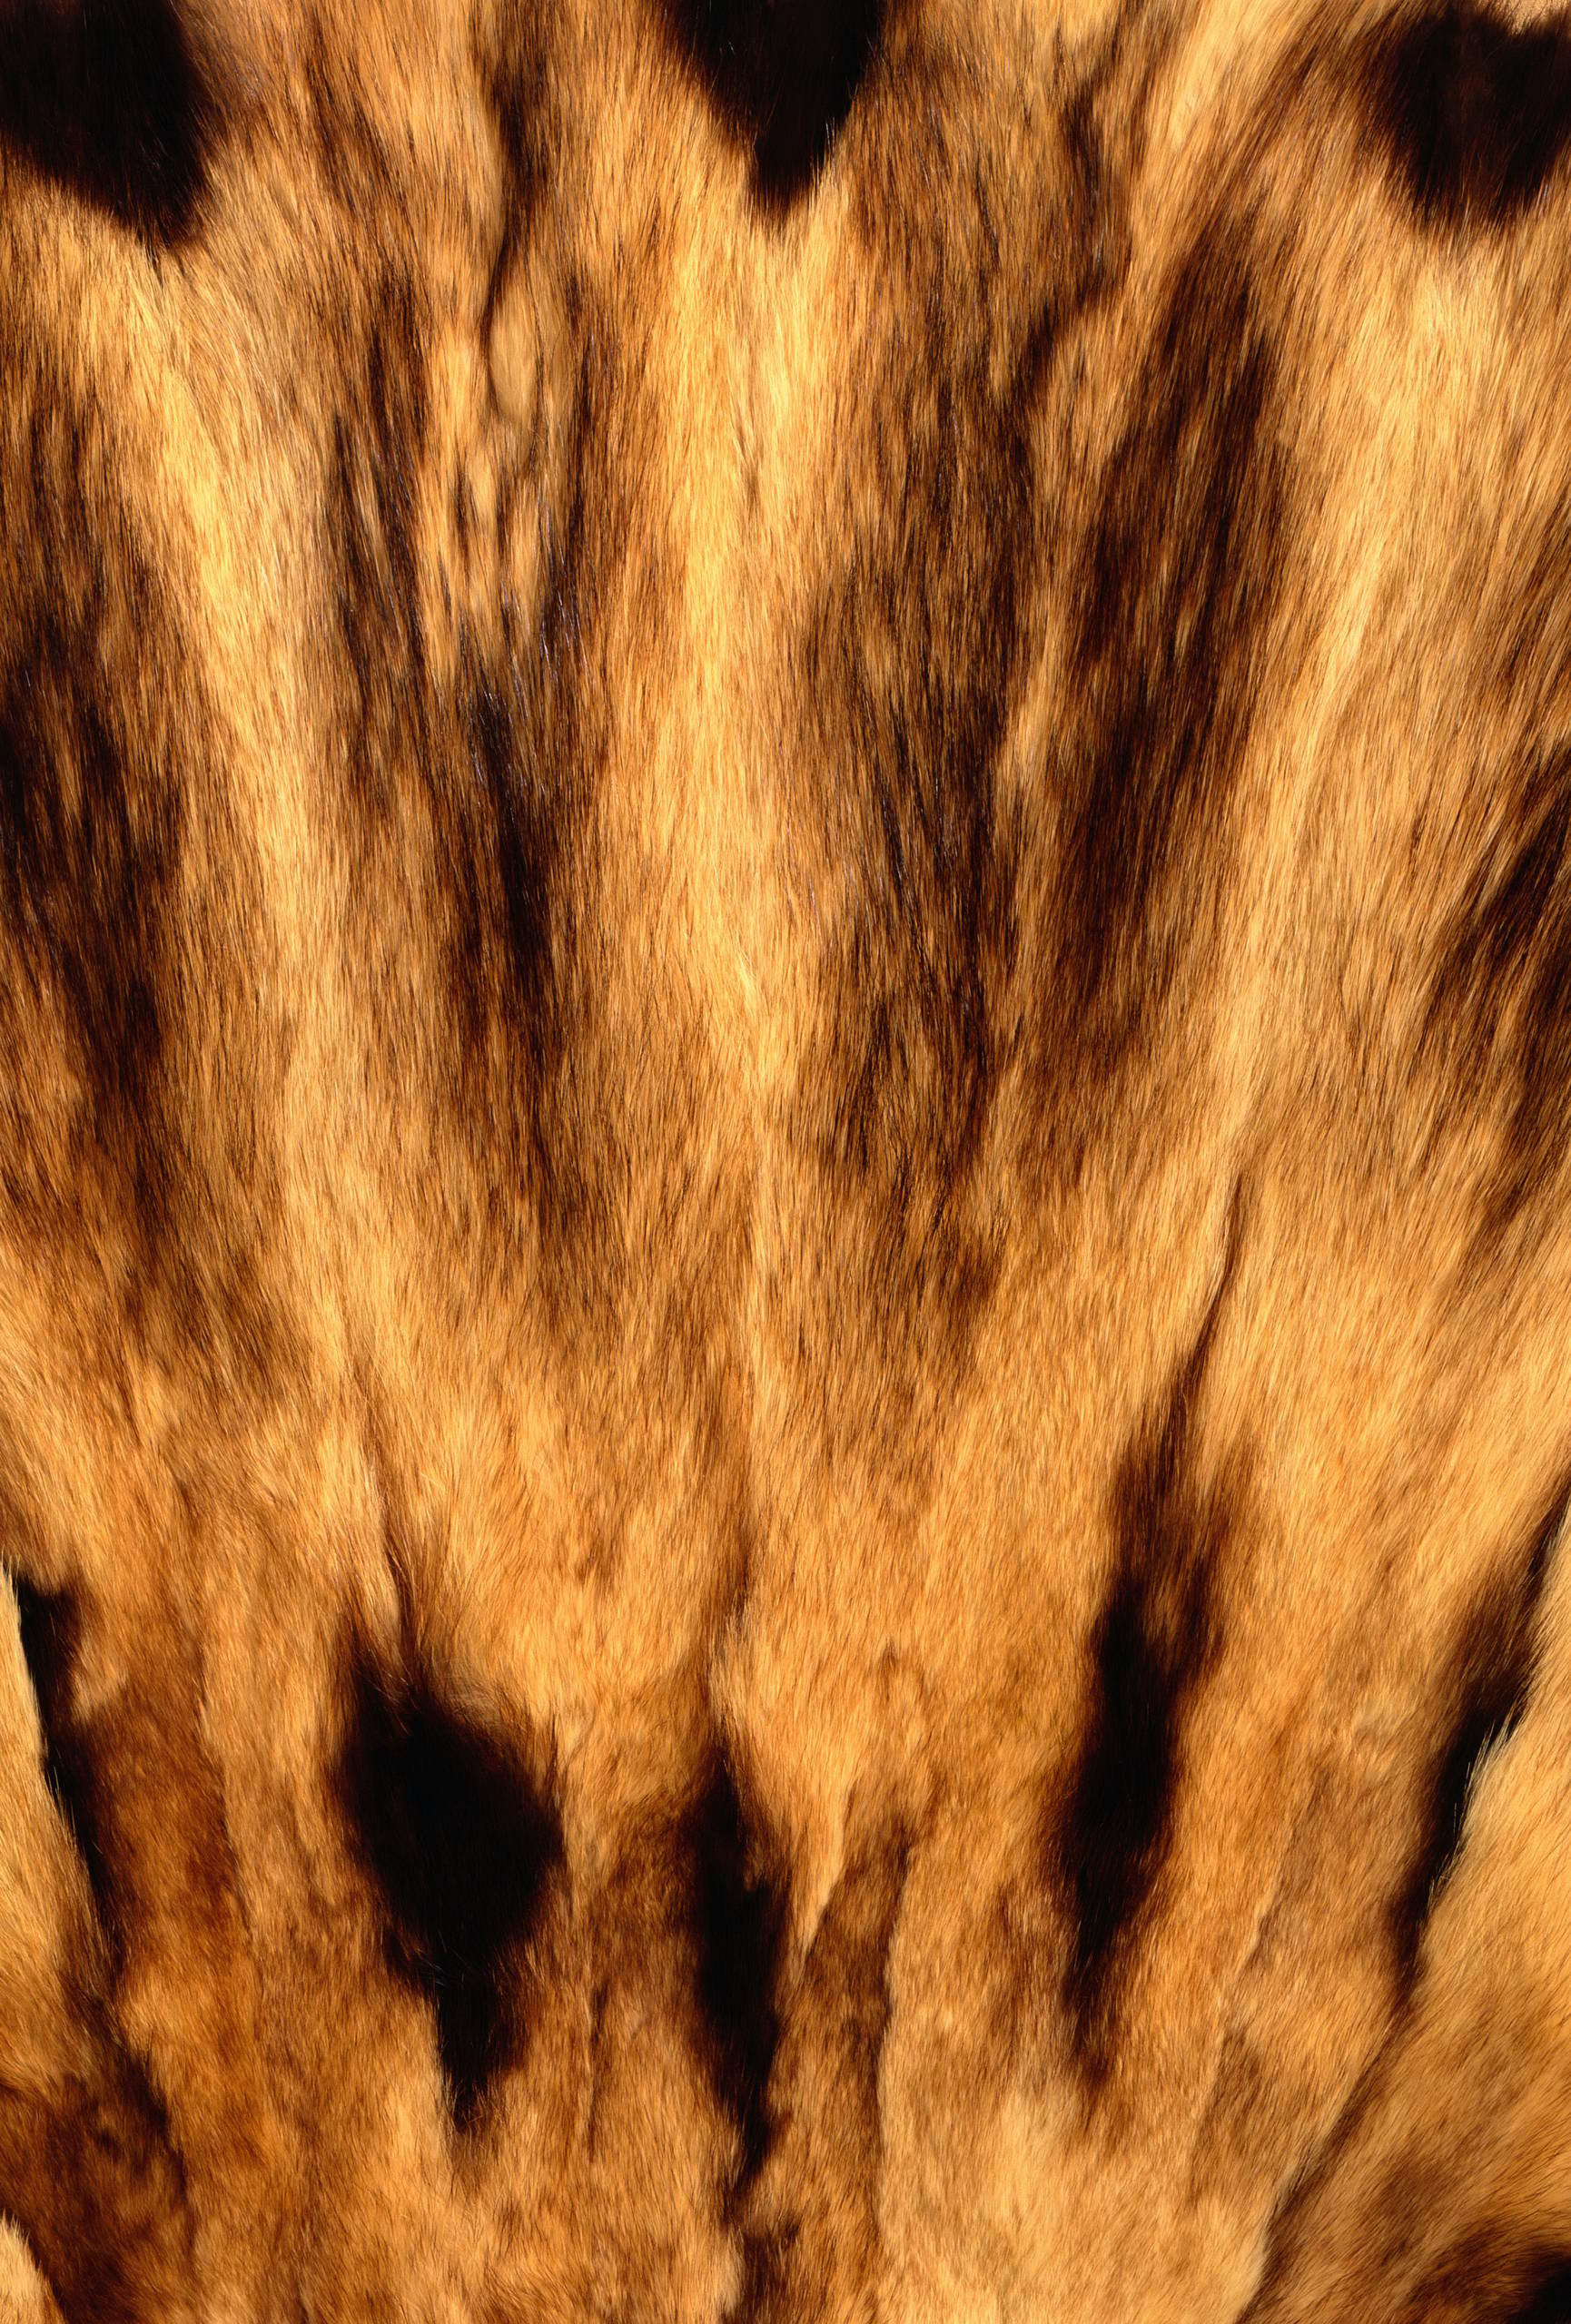 , texture fur, fur texture background, background